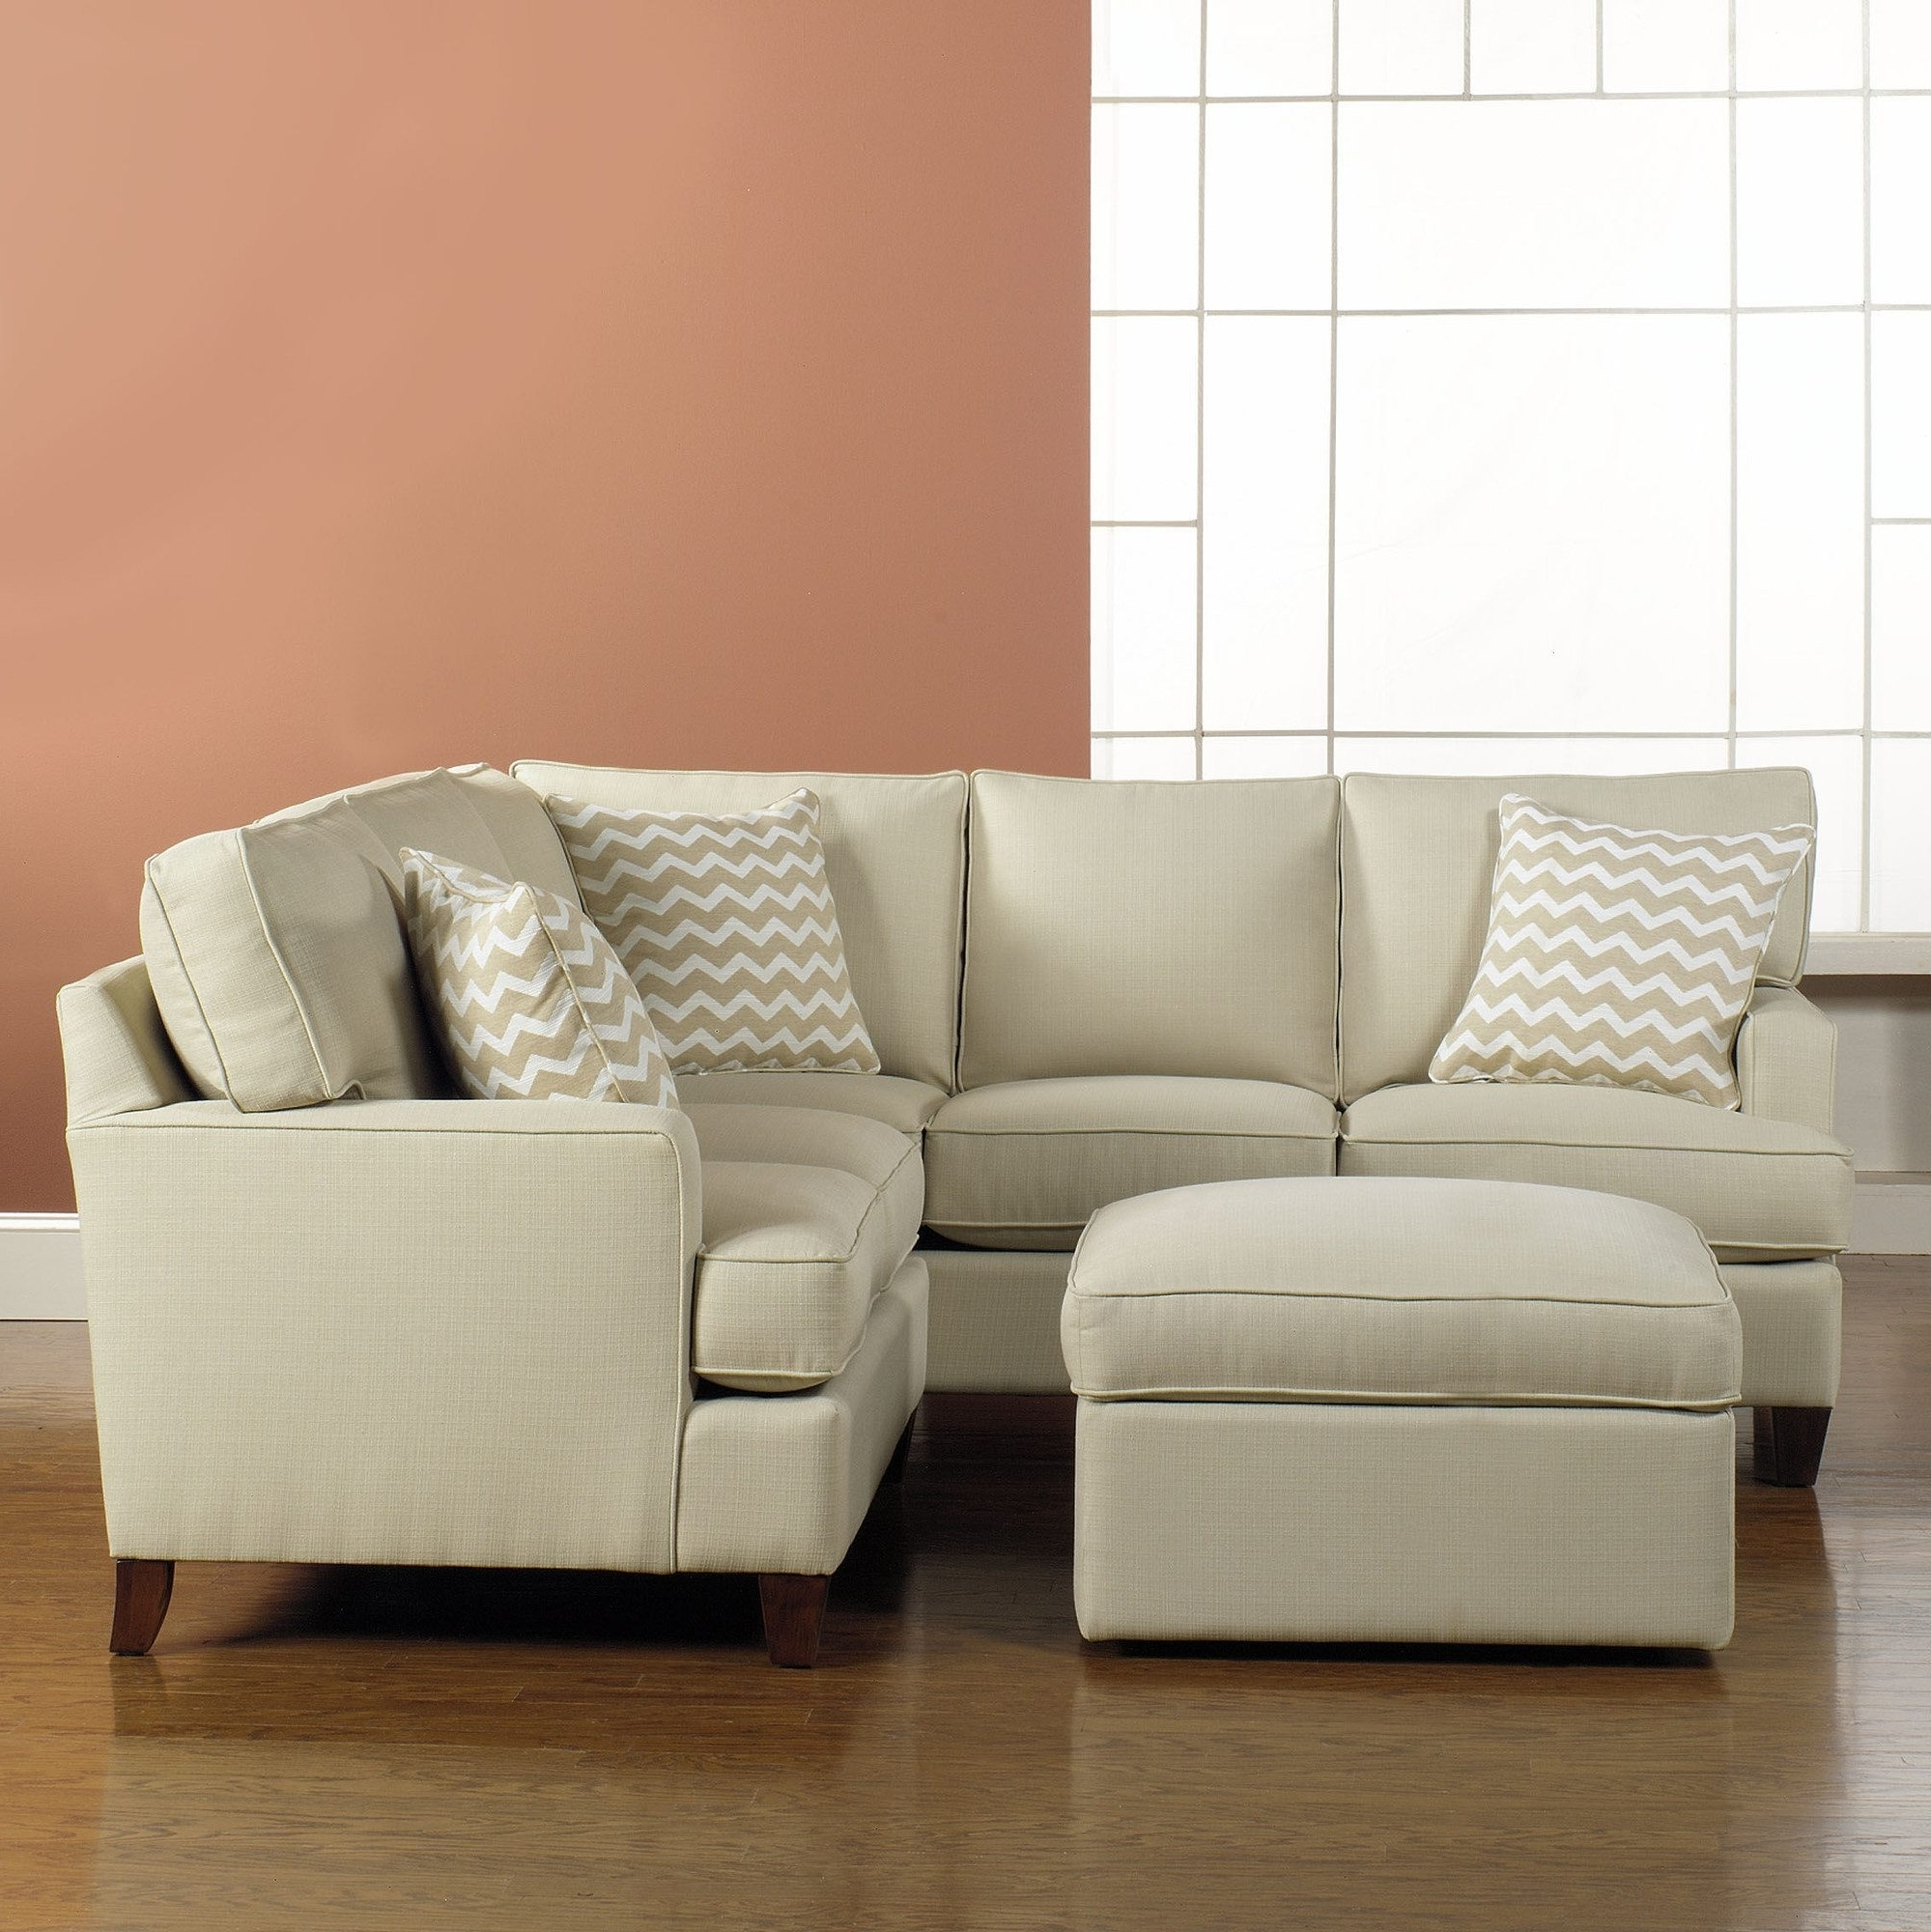 Ethan Mordden Modern Sofa Set Designs For Living Room Charcoal For Best And Newest Inexpensive Sectional Sofas For Small Spaces (View 4 of 15)